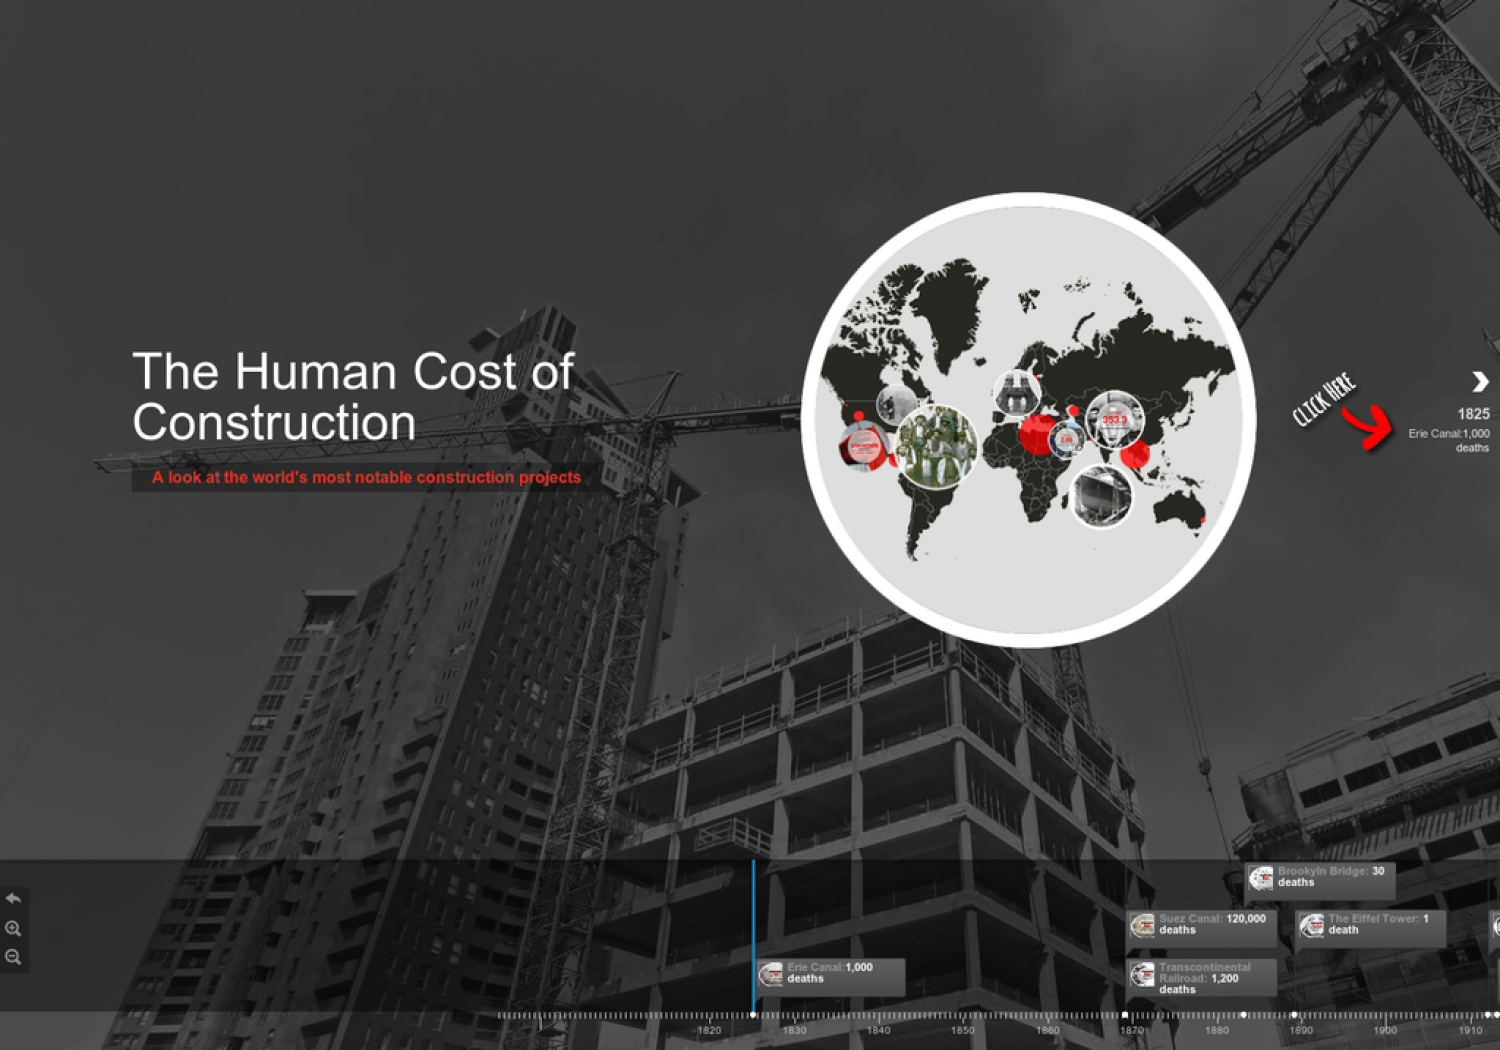 The Human Cost of Construction Infographic